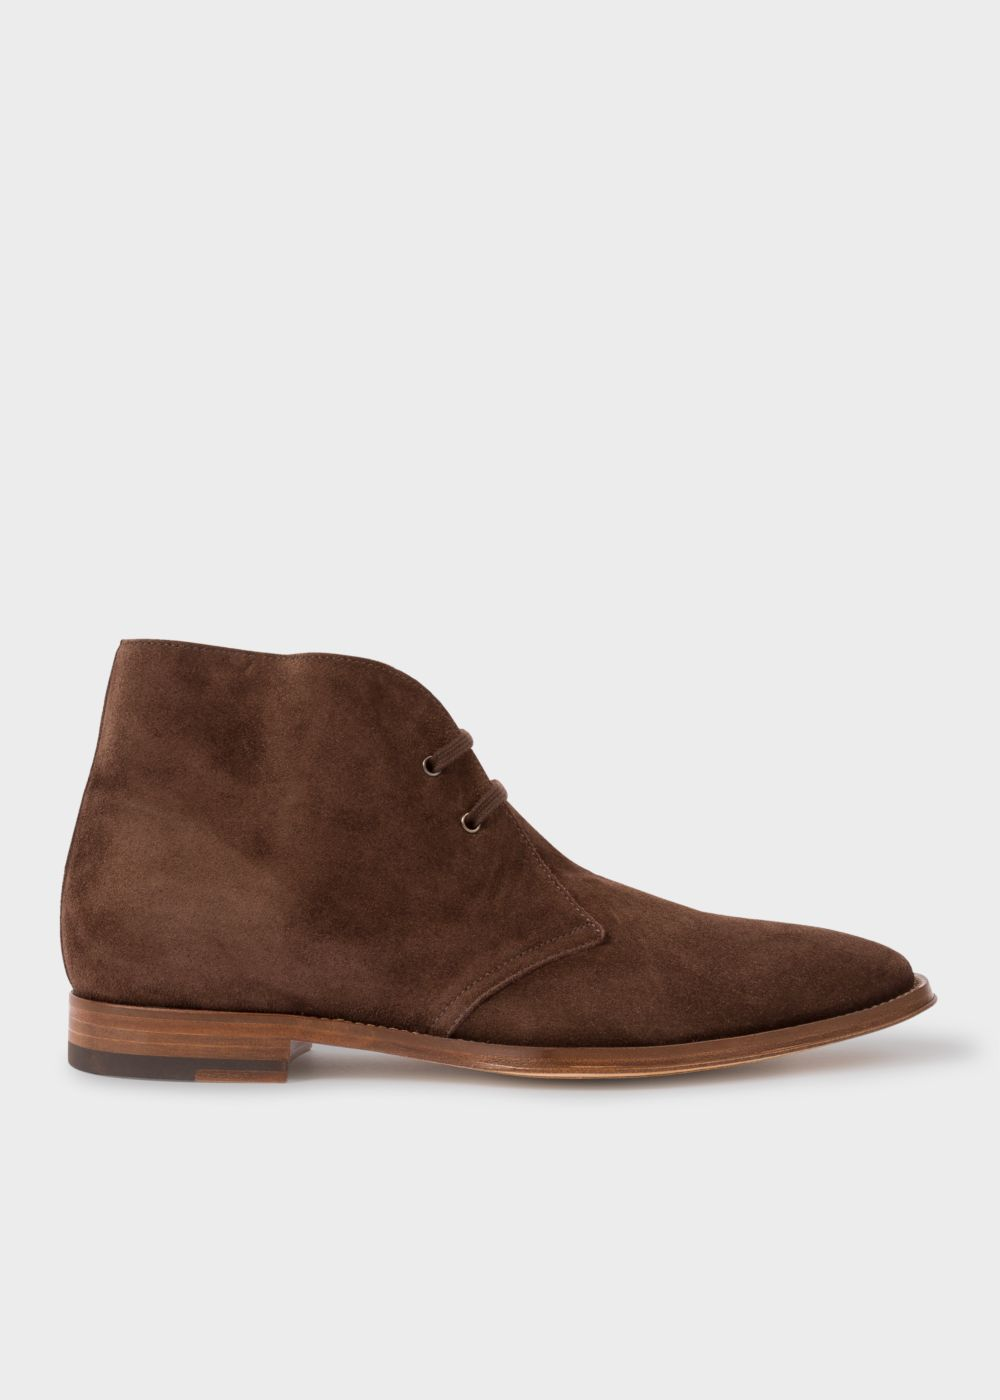 Paul Smith Men's Brown Suede 'Cash' Boots